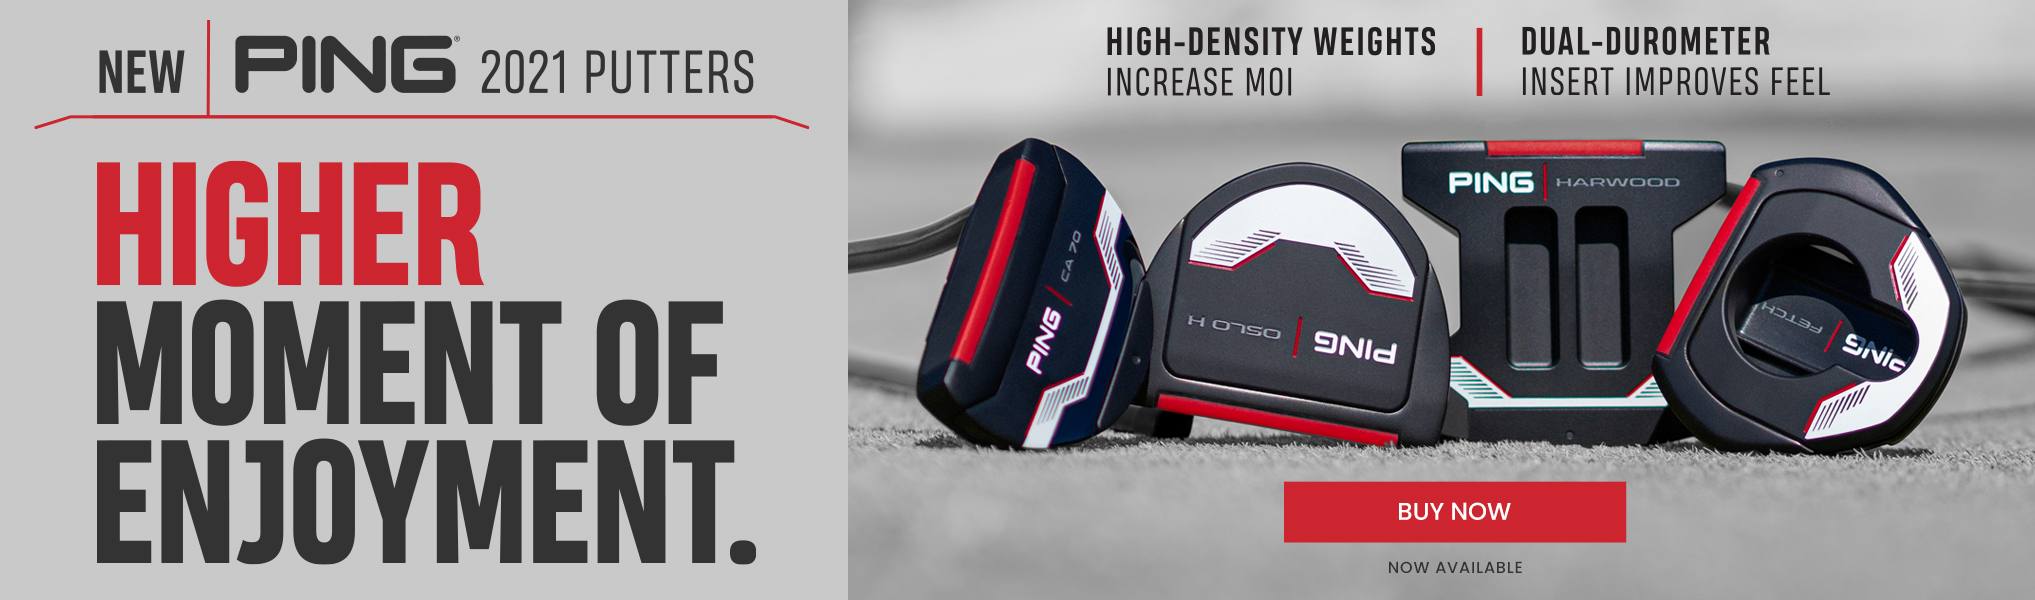 New PING 2021 Putters. Higher moment of enjoyent. Buy Now. Now Available.